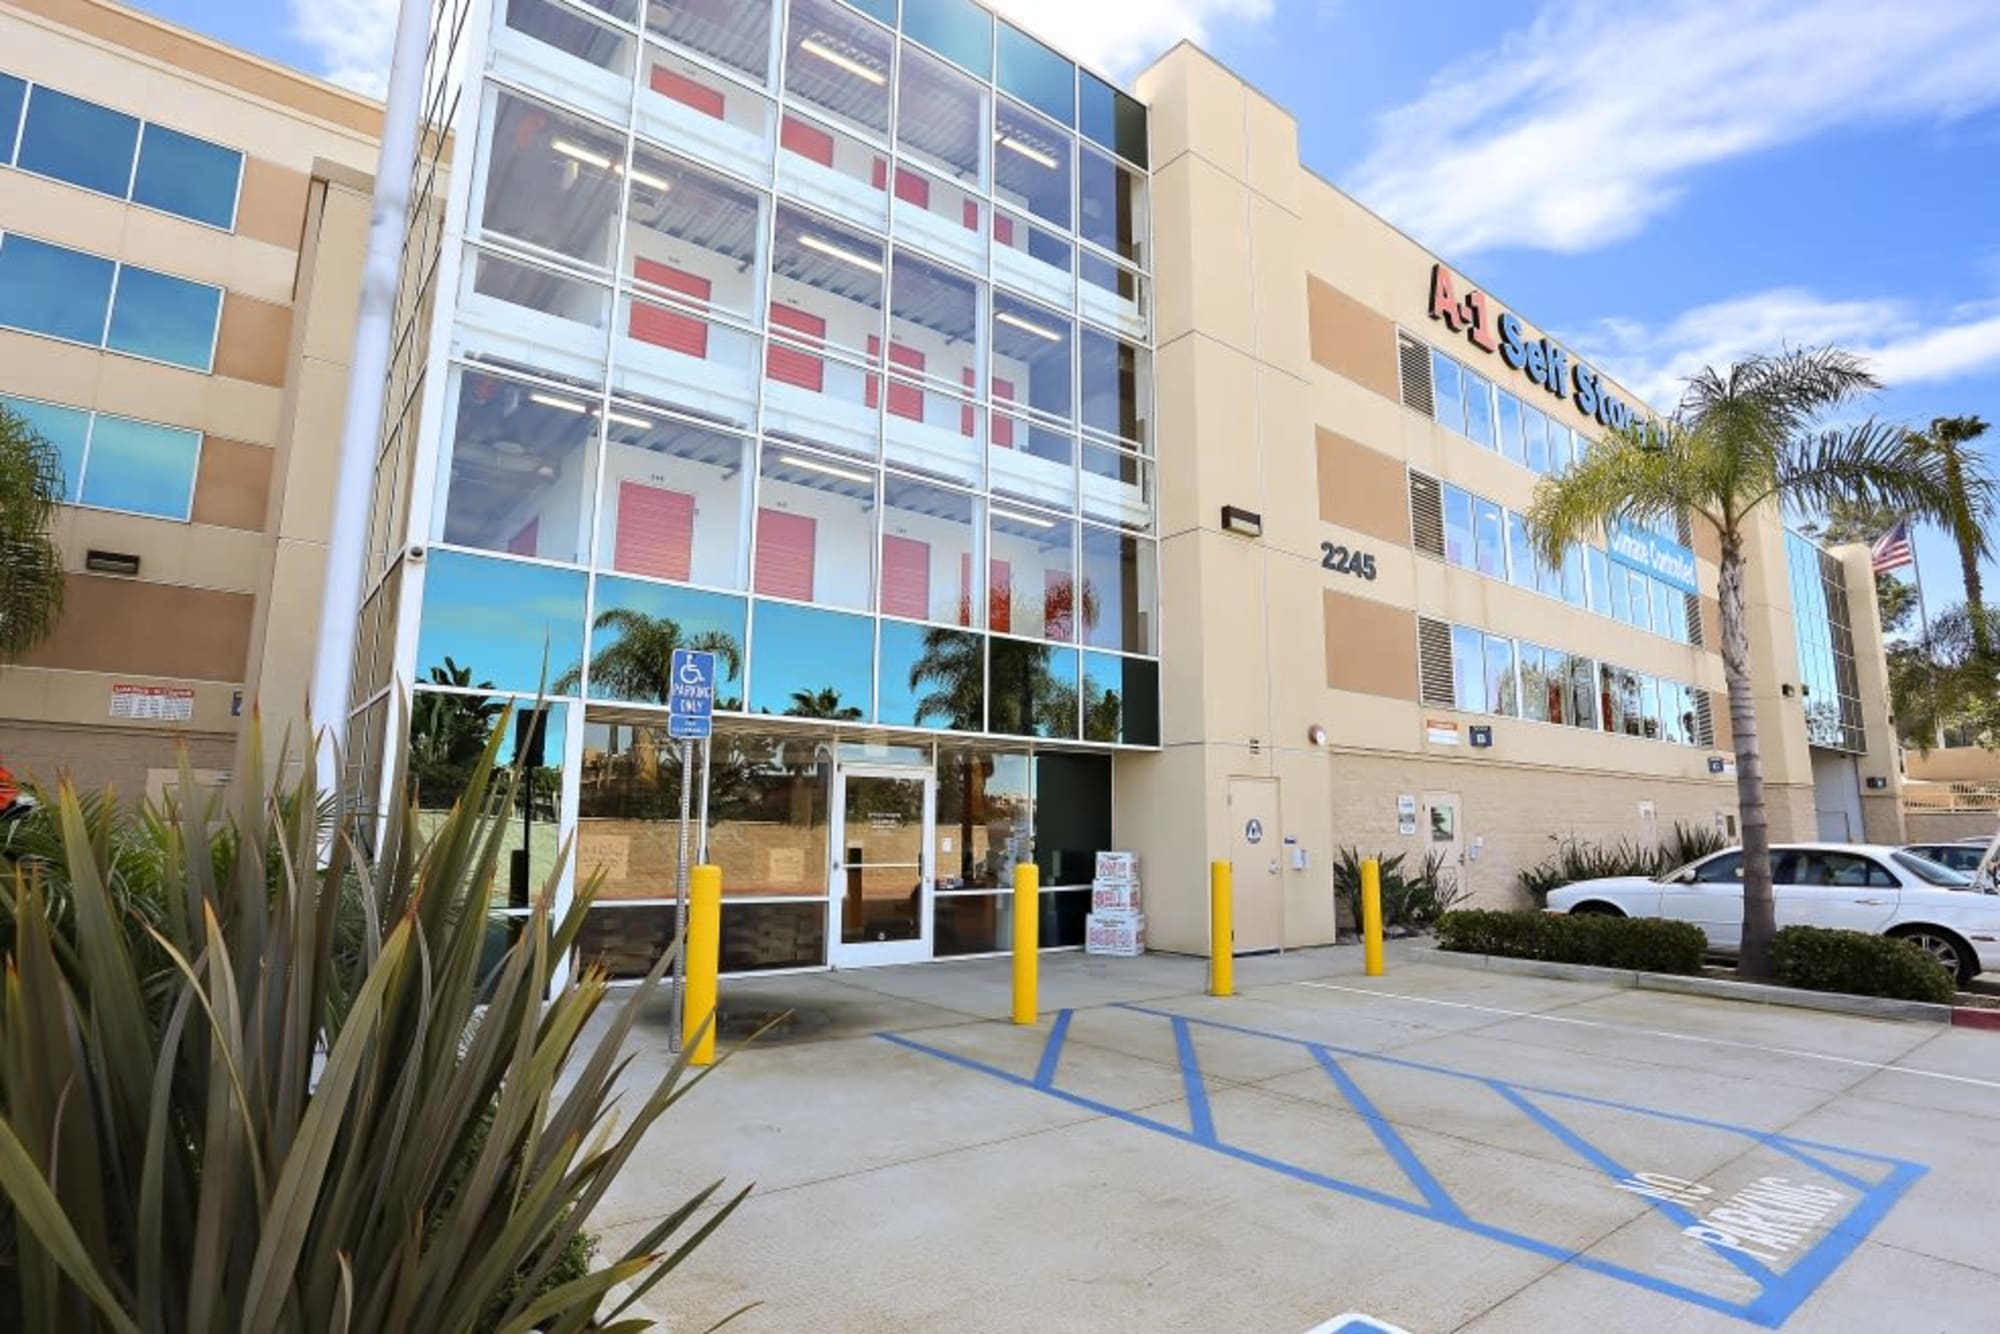 The front entrance of A-1 Self Storage in San Diego, California